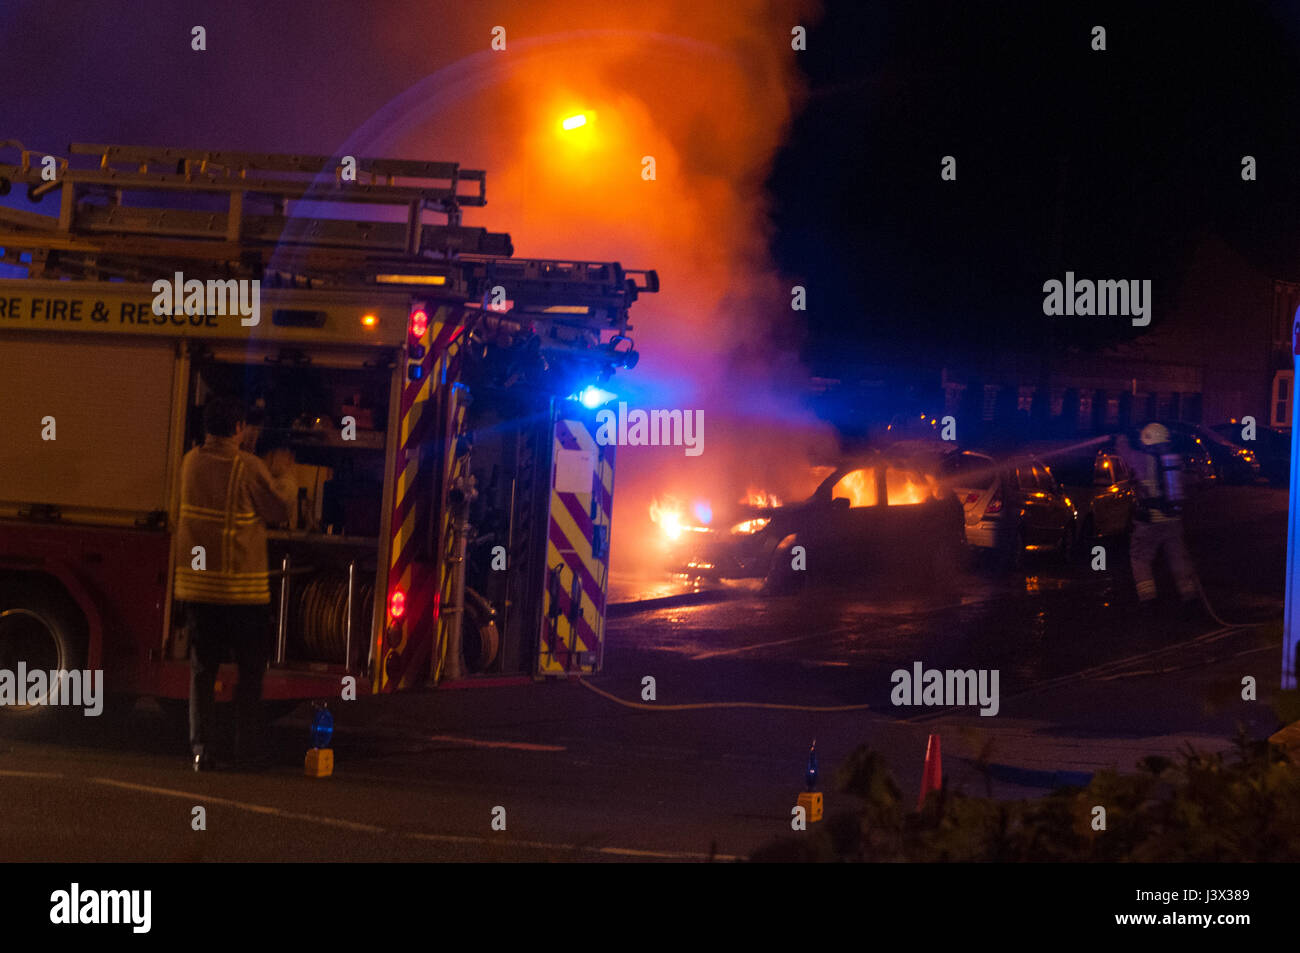 oxford-oxfordshire-uk-7th-may-2017-car-on-fire-on-iffley-road-credit-J3X389.jpg